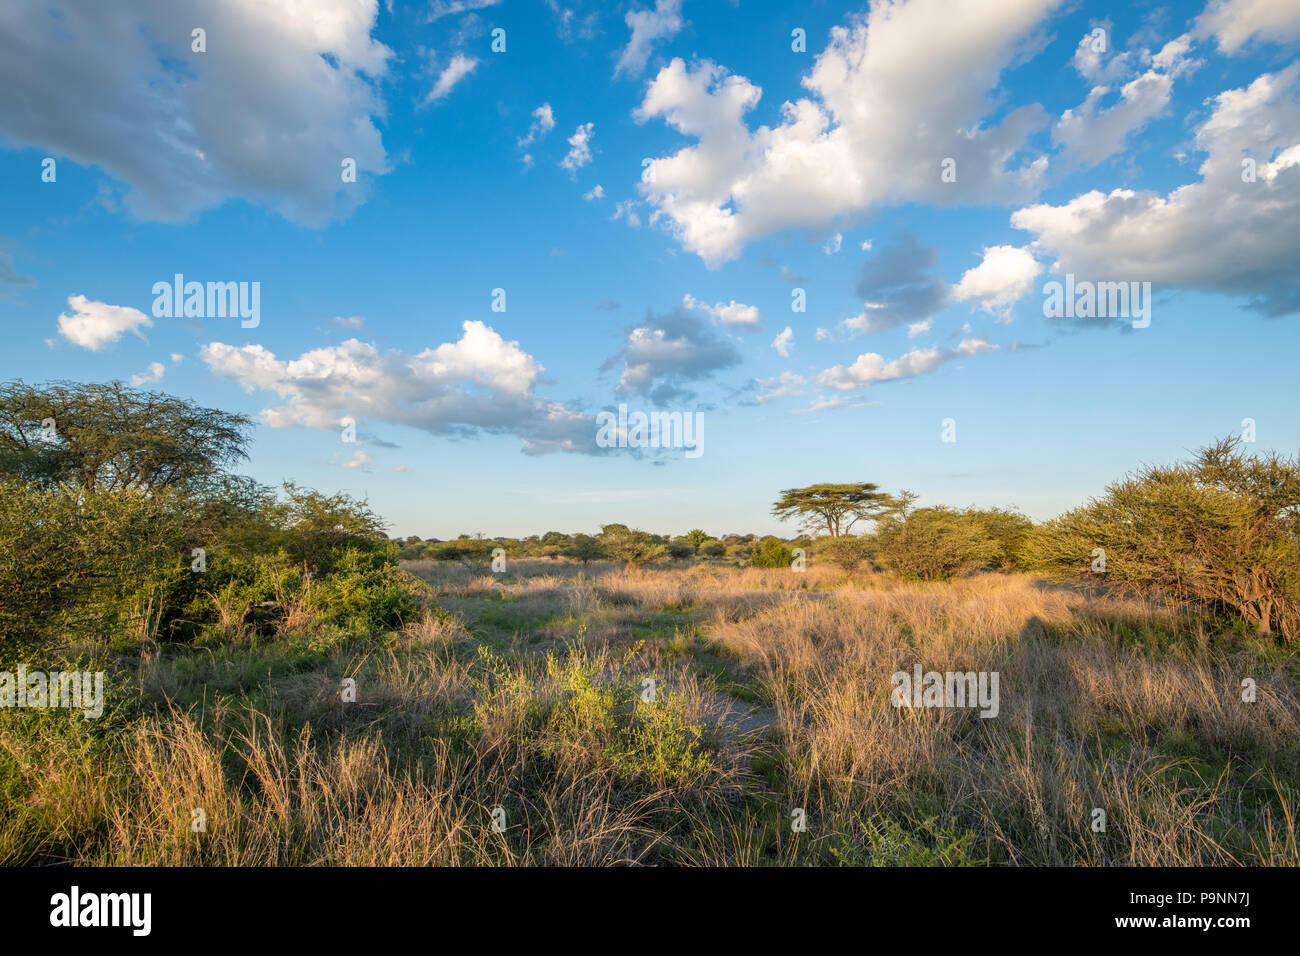 A landscape view of the grasslands in Hwange National Park. Hwange, Zimbabwe Stock Photo